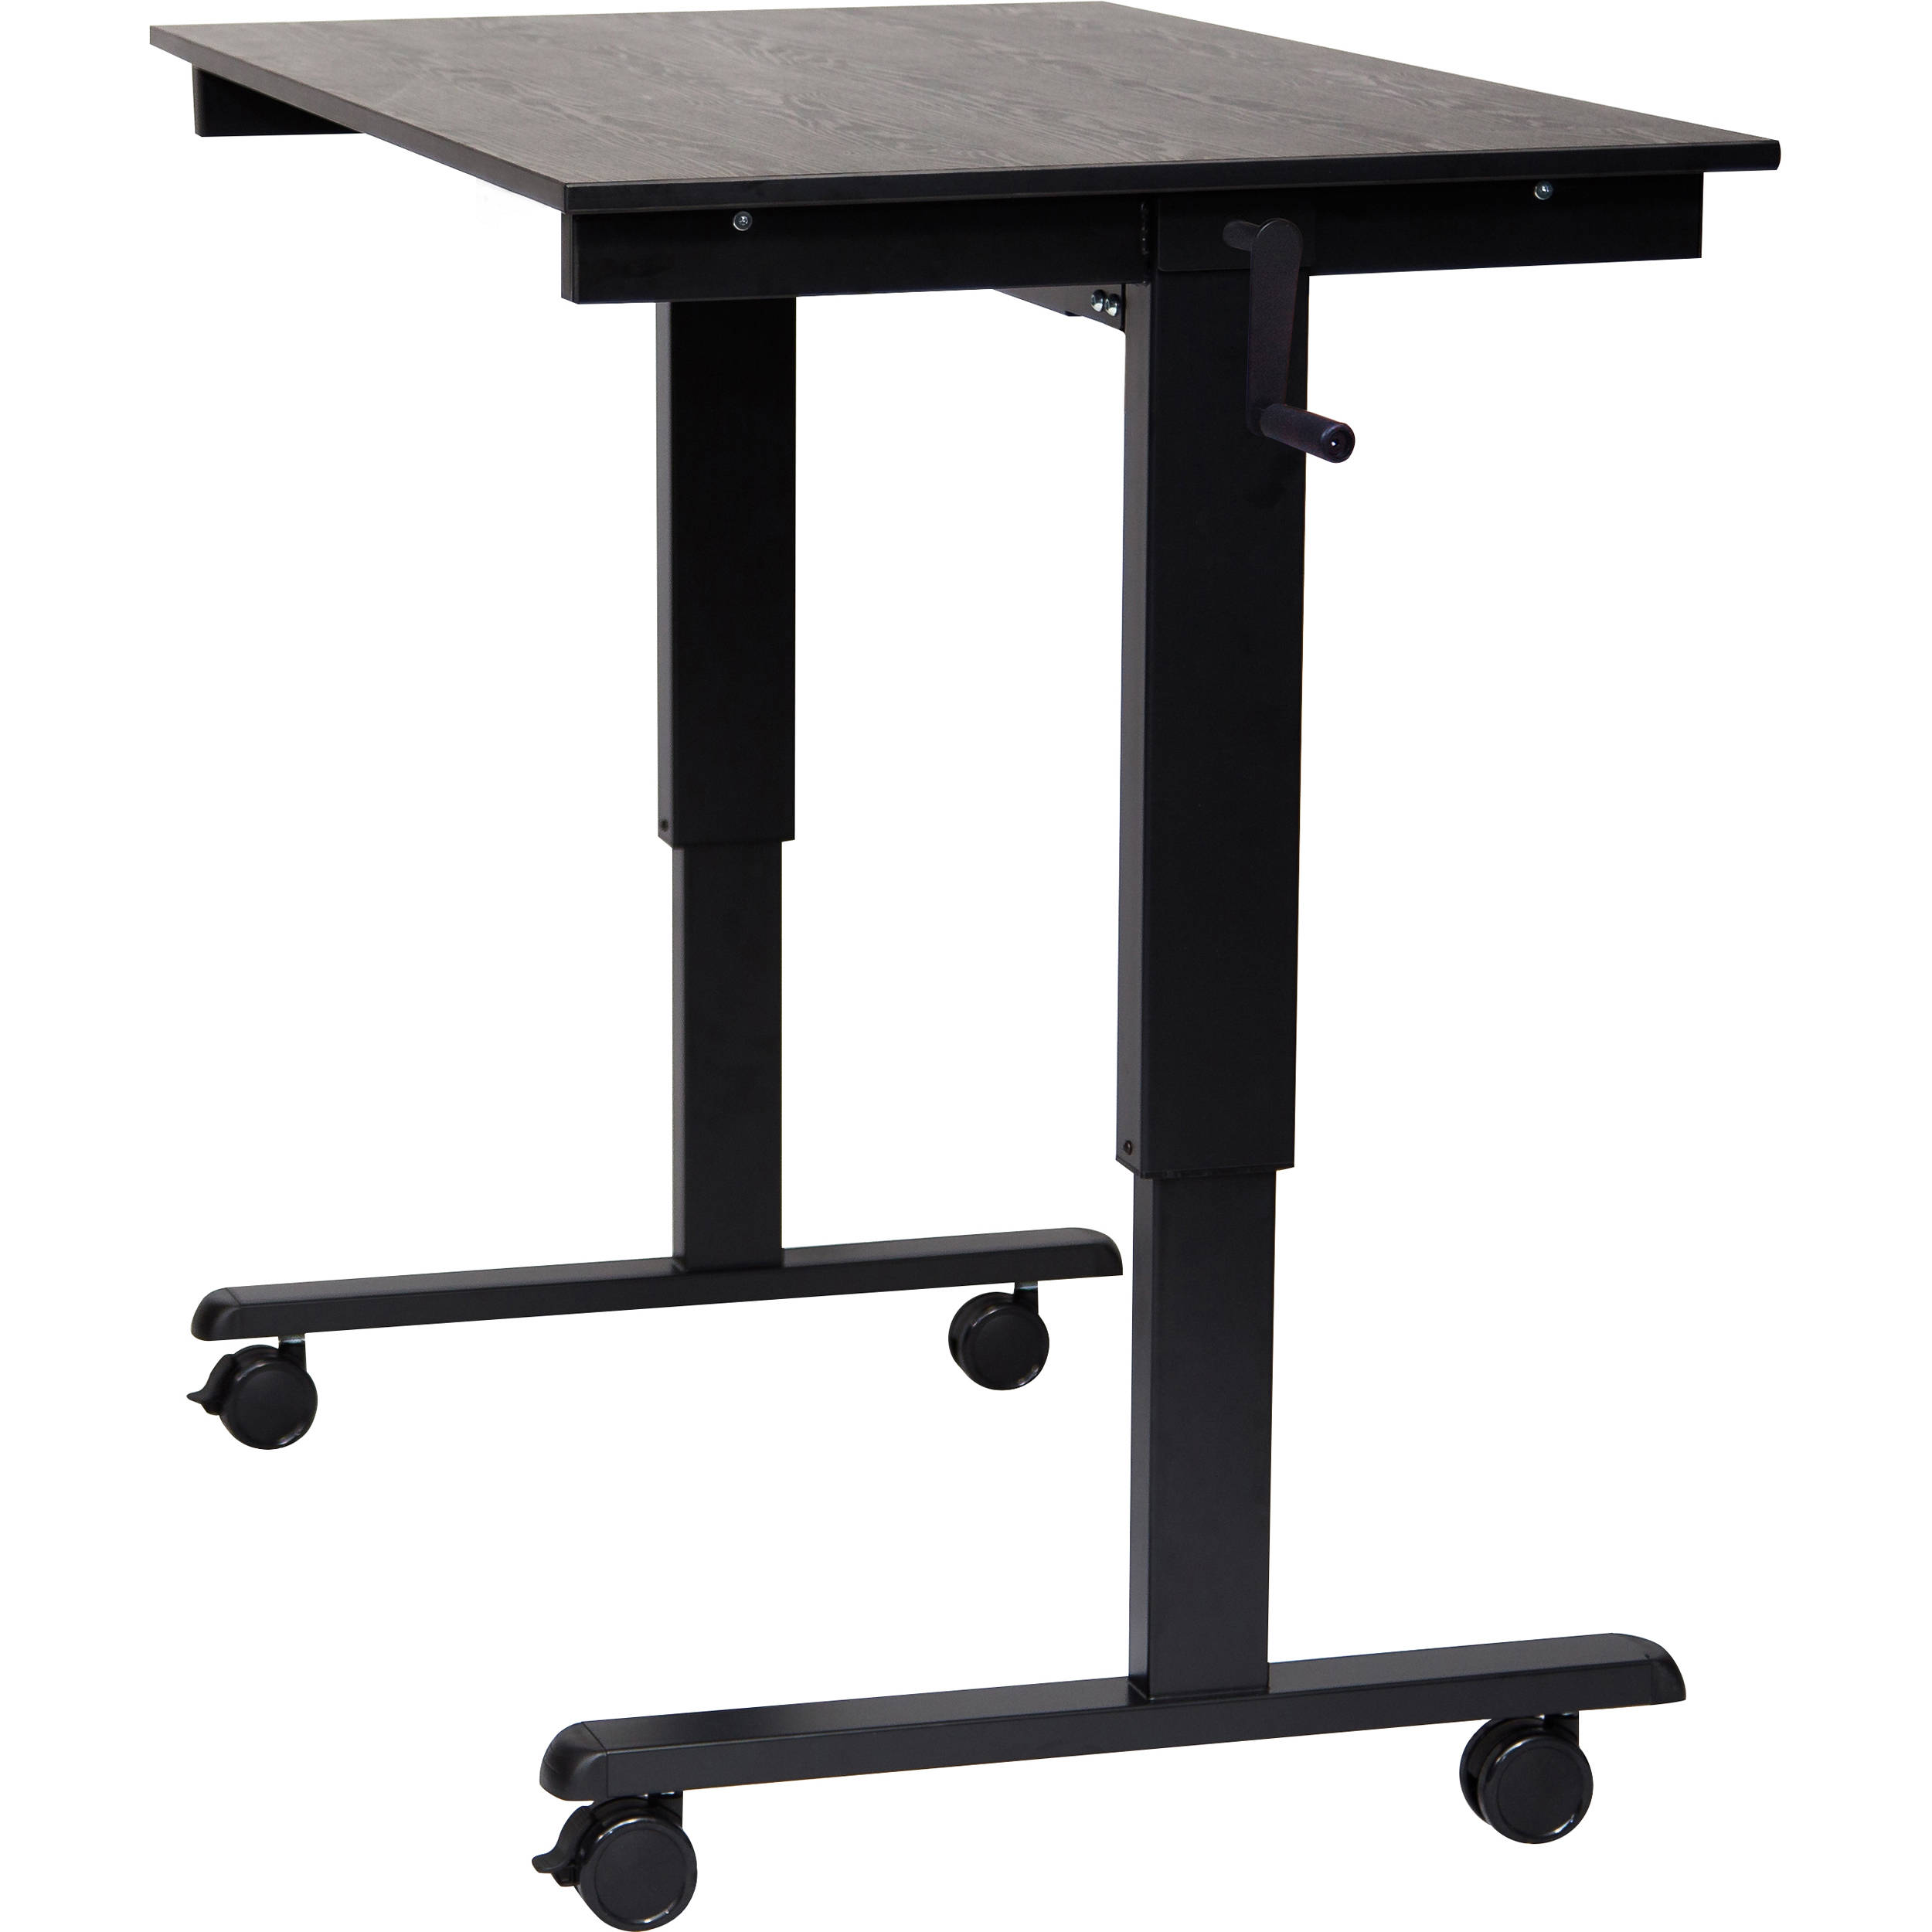 p tray standing up platform riser height adjustable desk removable black desks flexispot in stand keyboard w